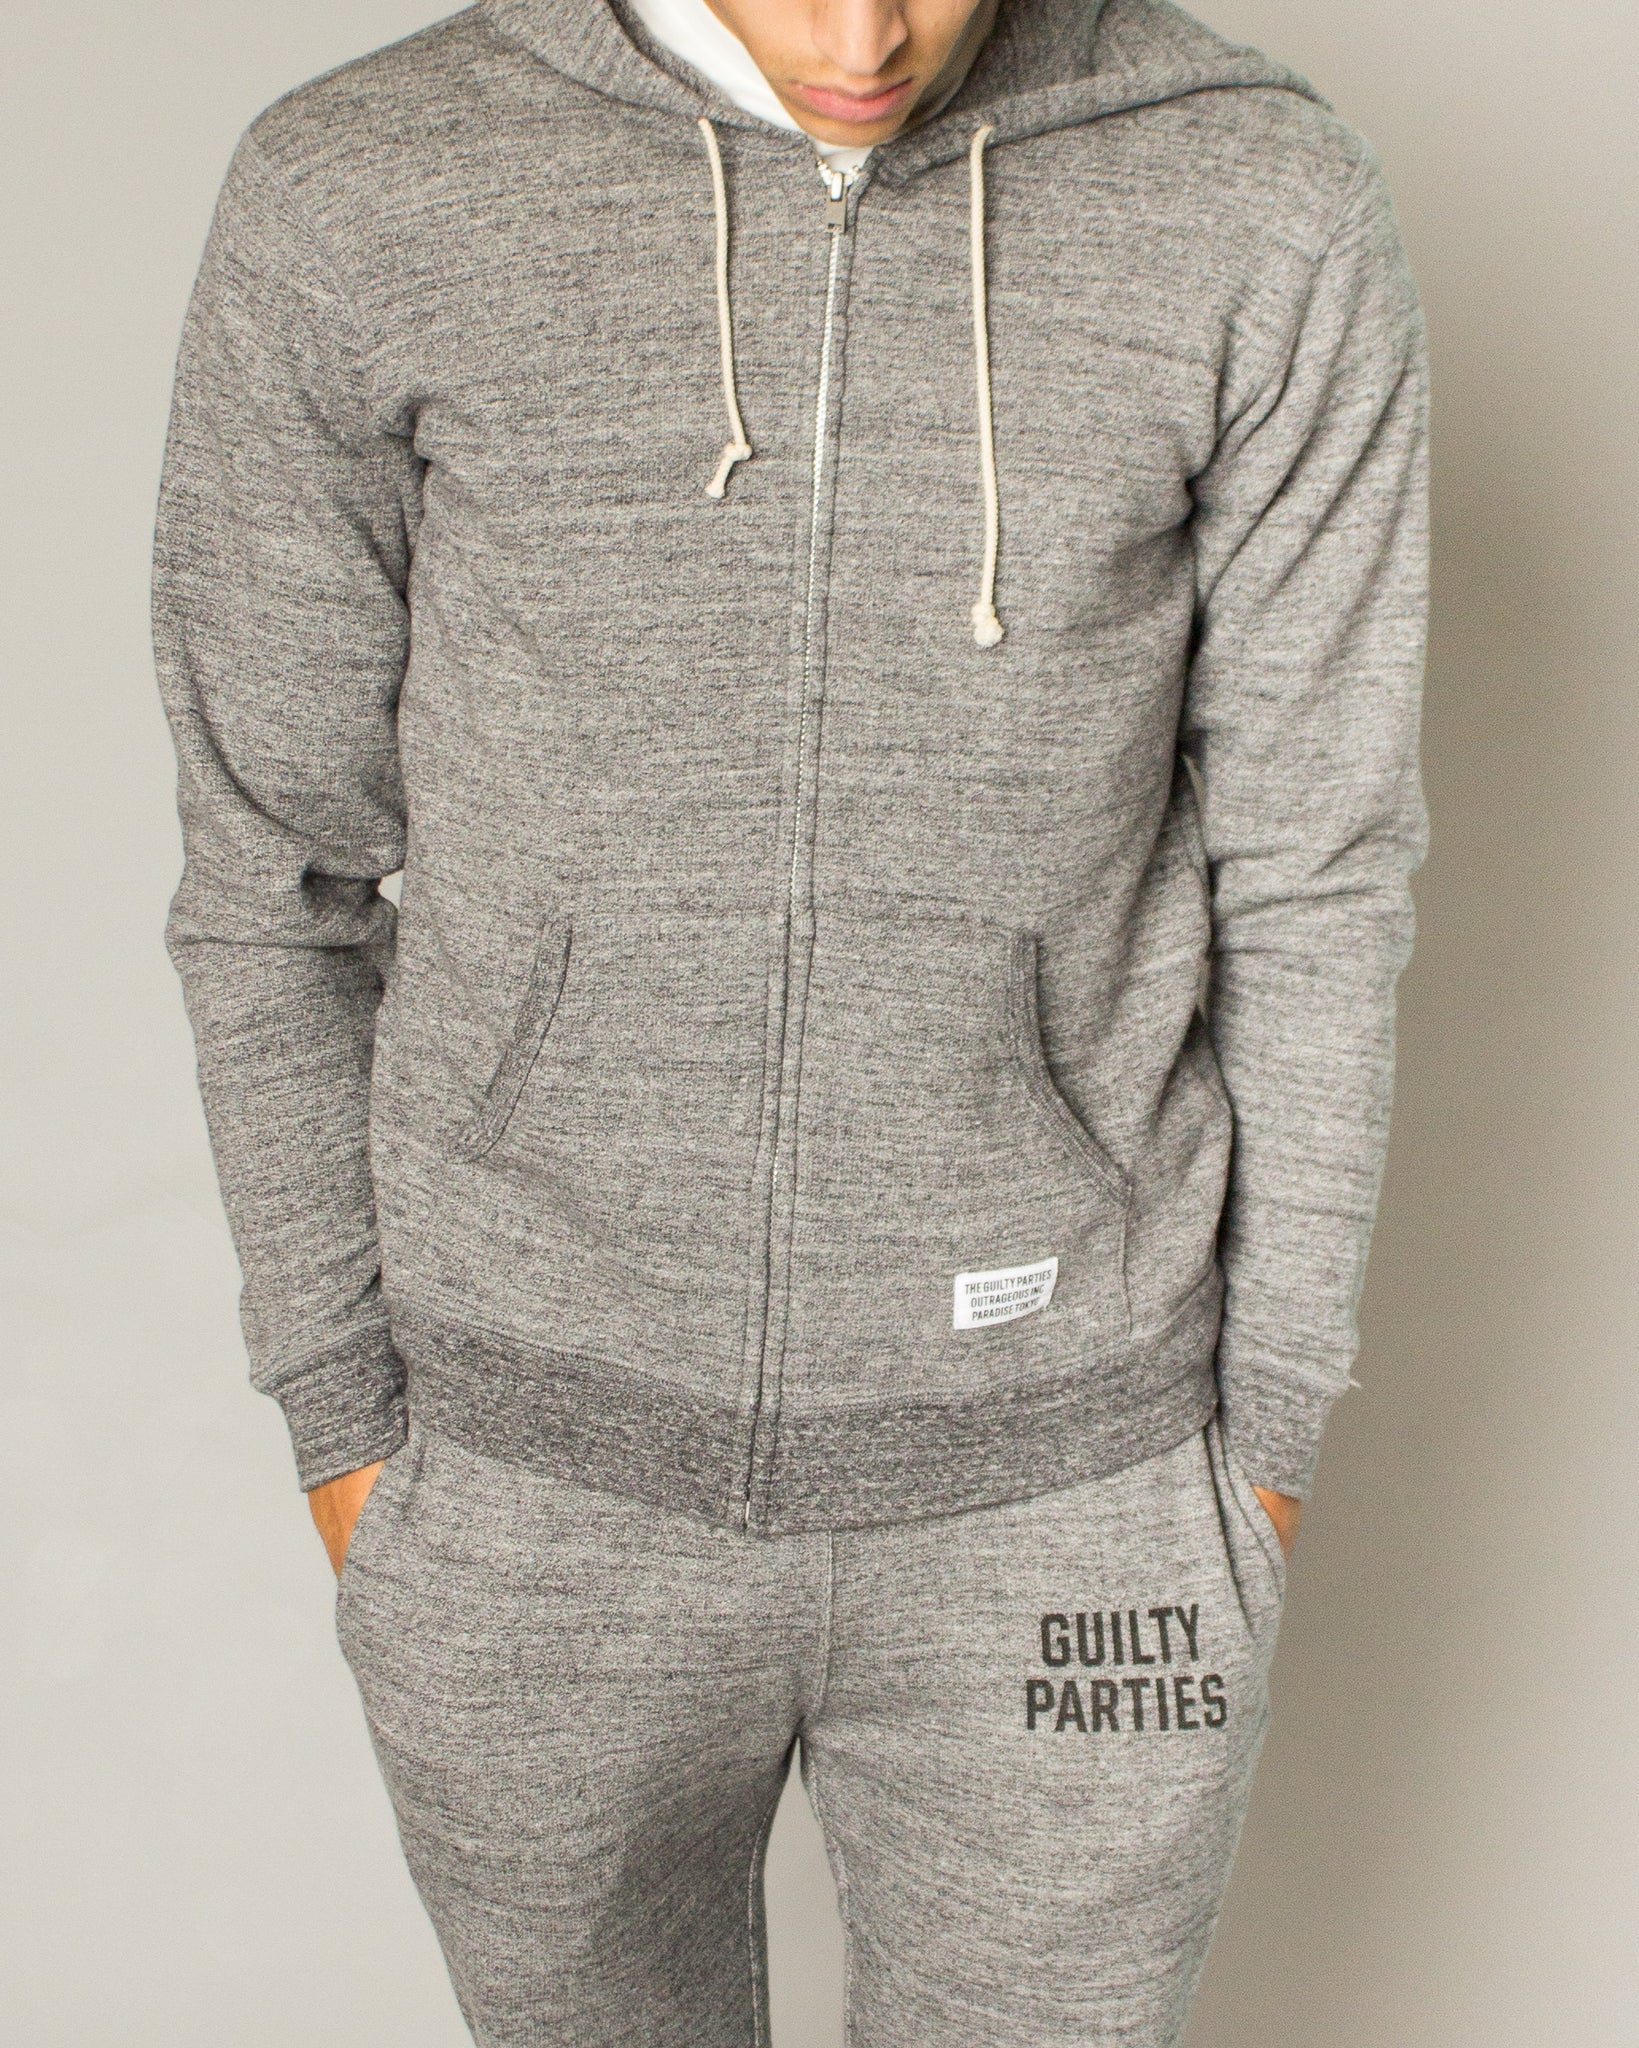 Guilty Parties Full Zip Hooded Sweatshirt Grey